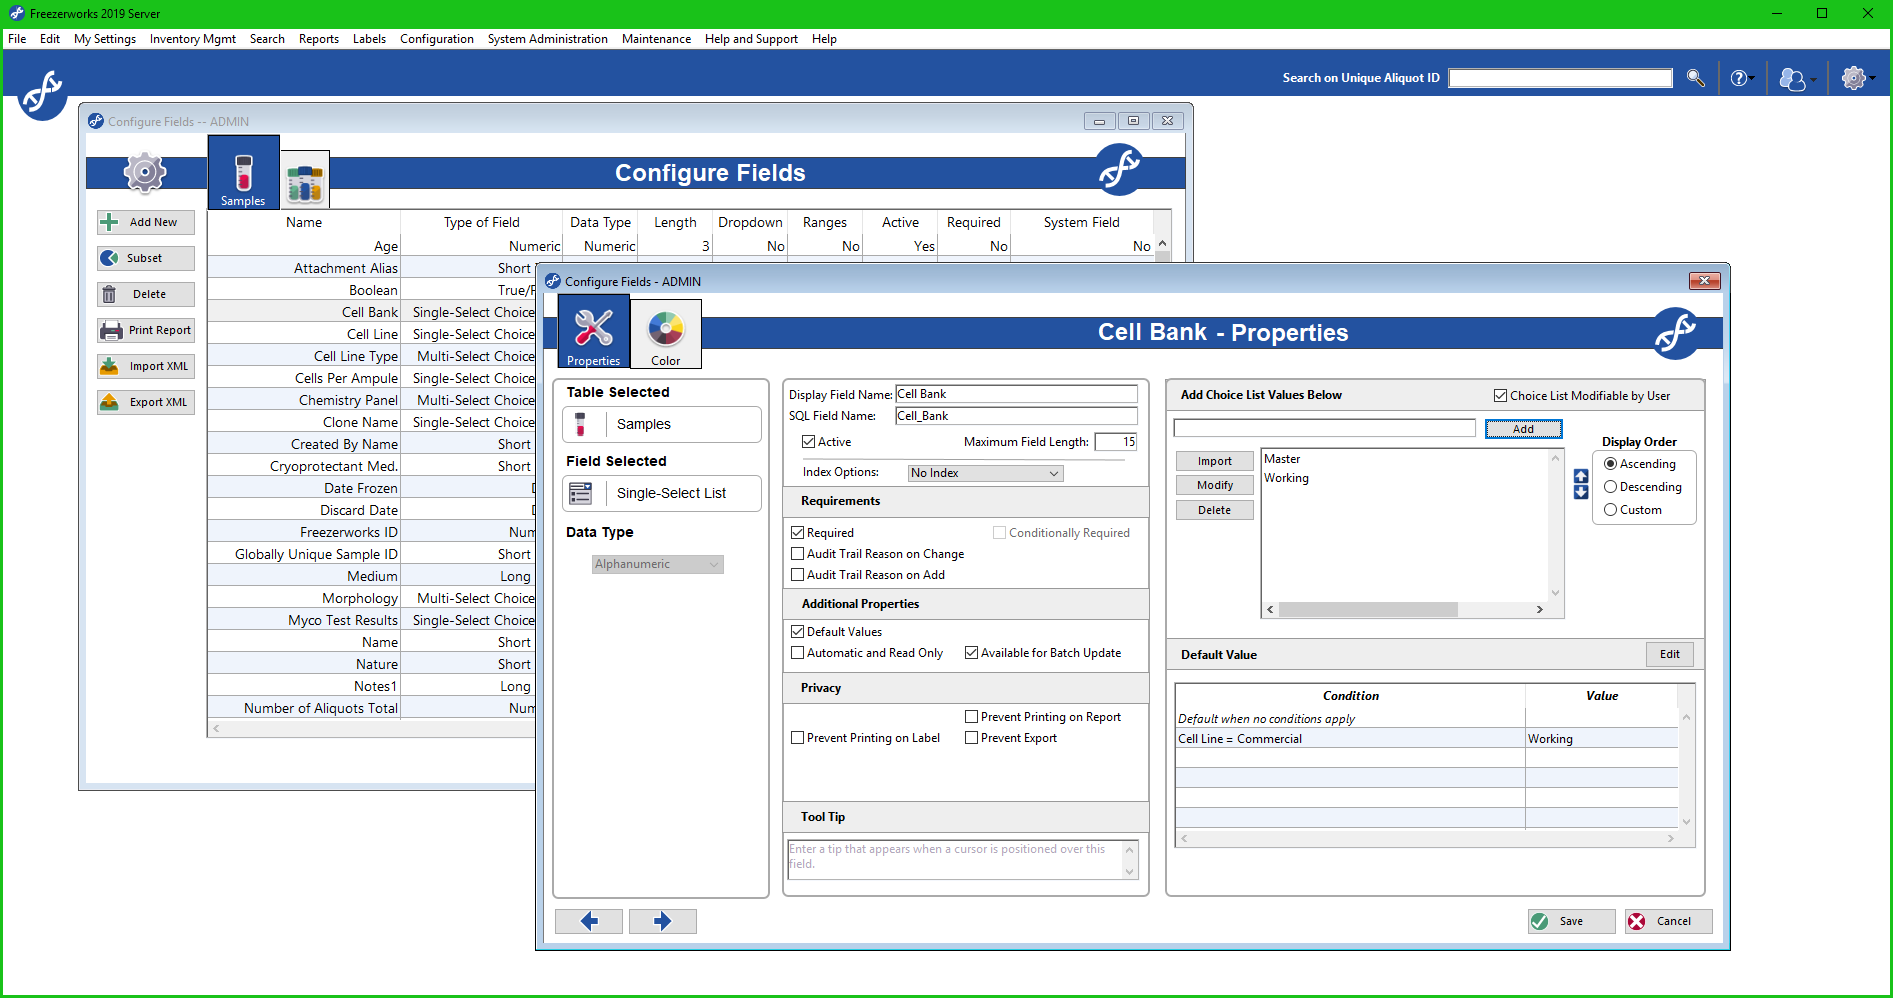 Configure fields to simplify your laboratory's sample management